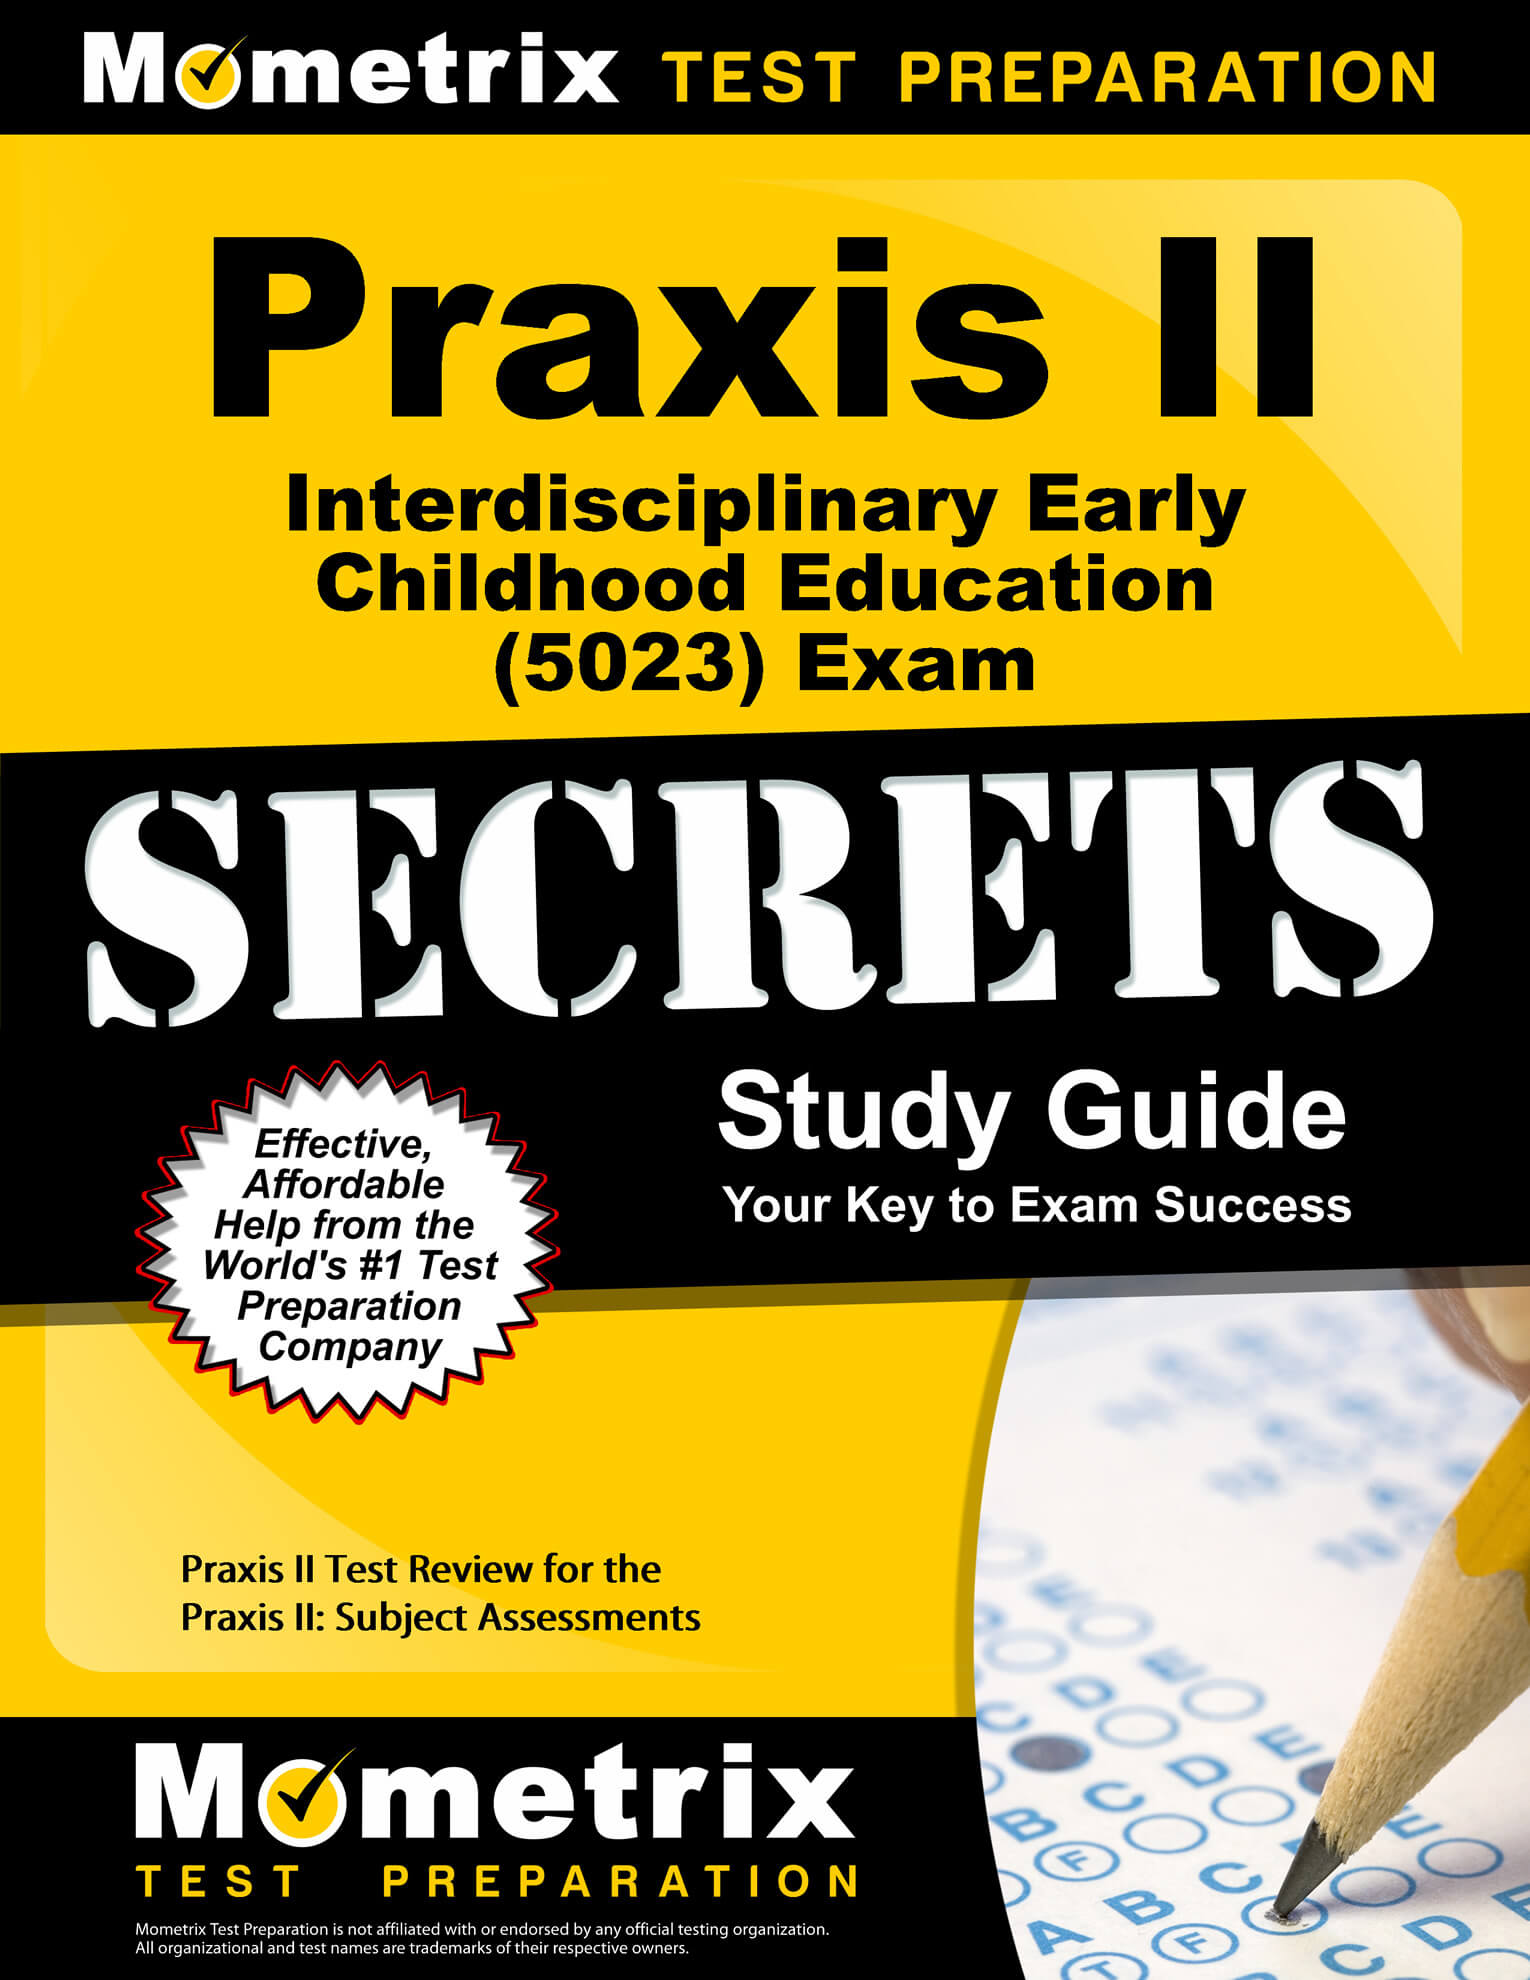 Praxis II Interdisciplinary Early Childhood Education Study Guide